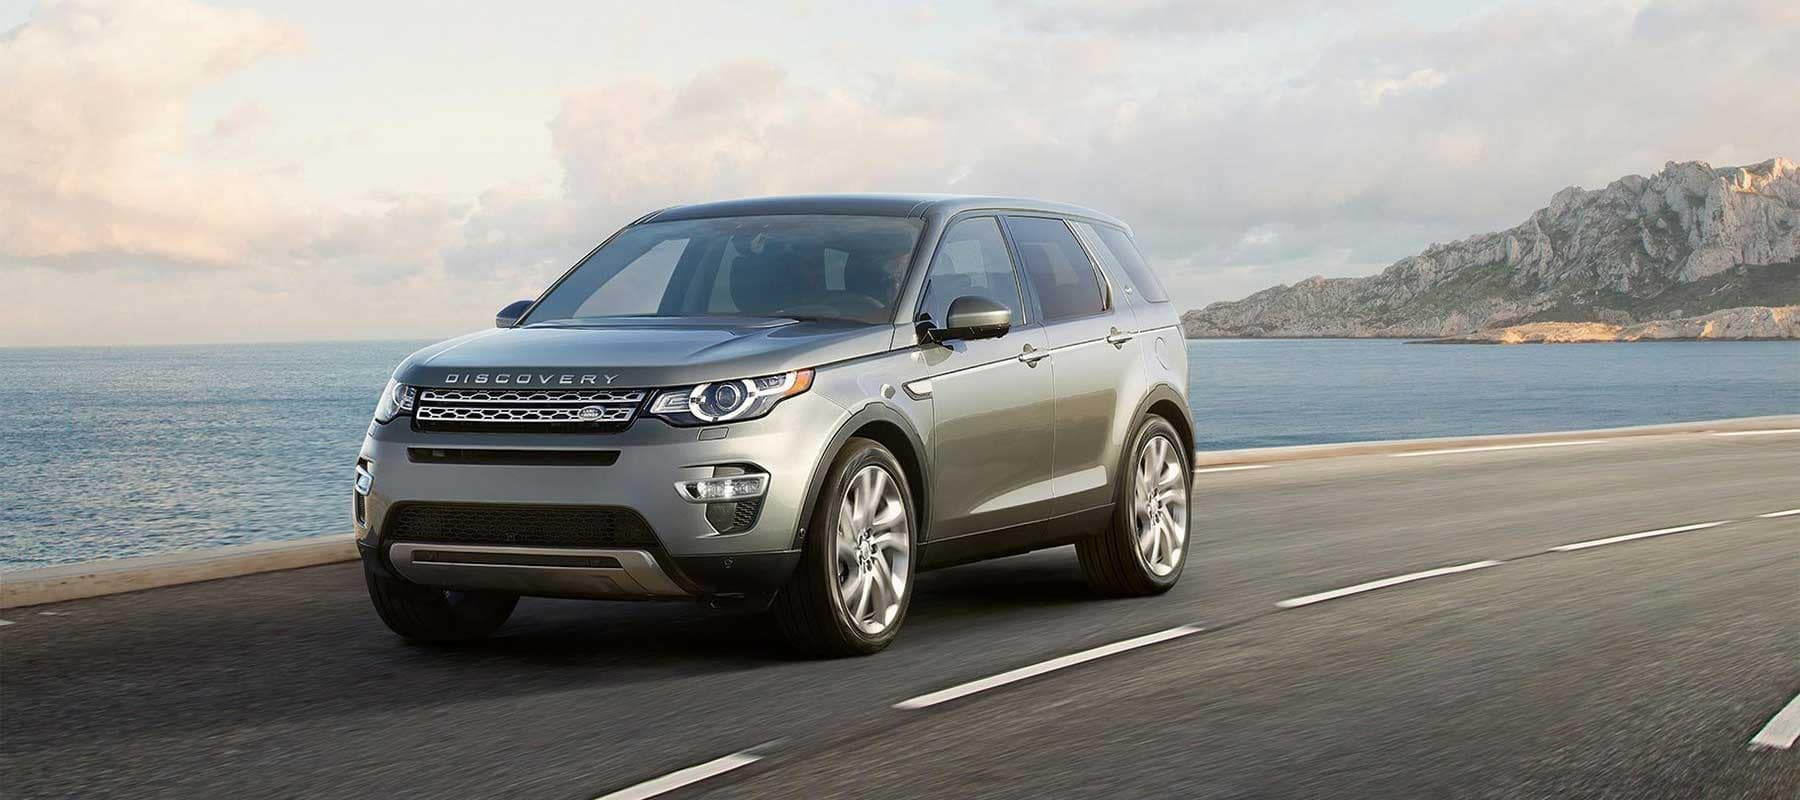 2018 Land Rover Discovery Sport: Expectations, Changes >> Car Leasing And Financing Faq Ray Catena Land Rover